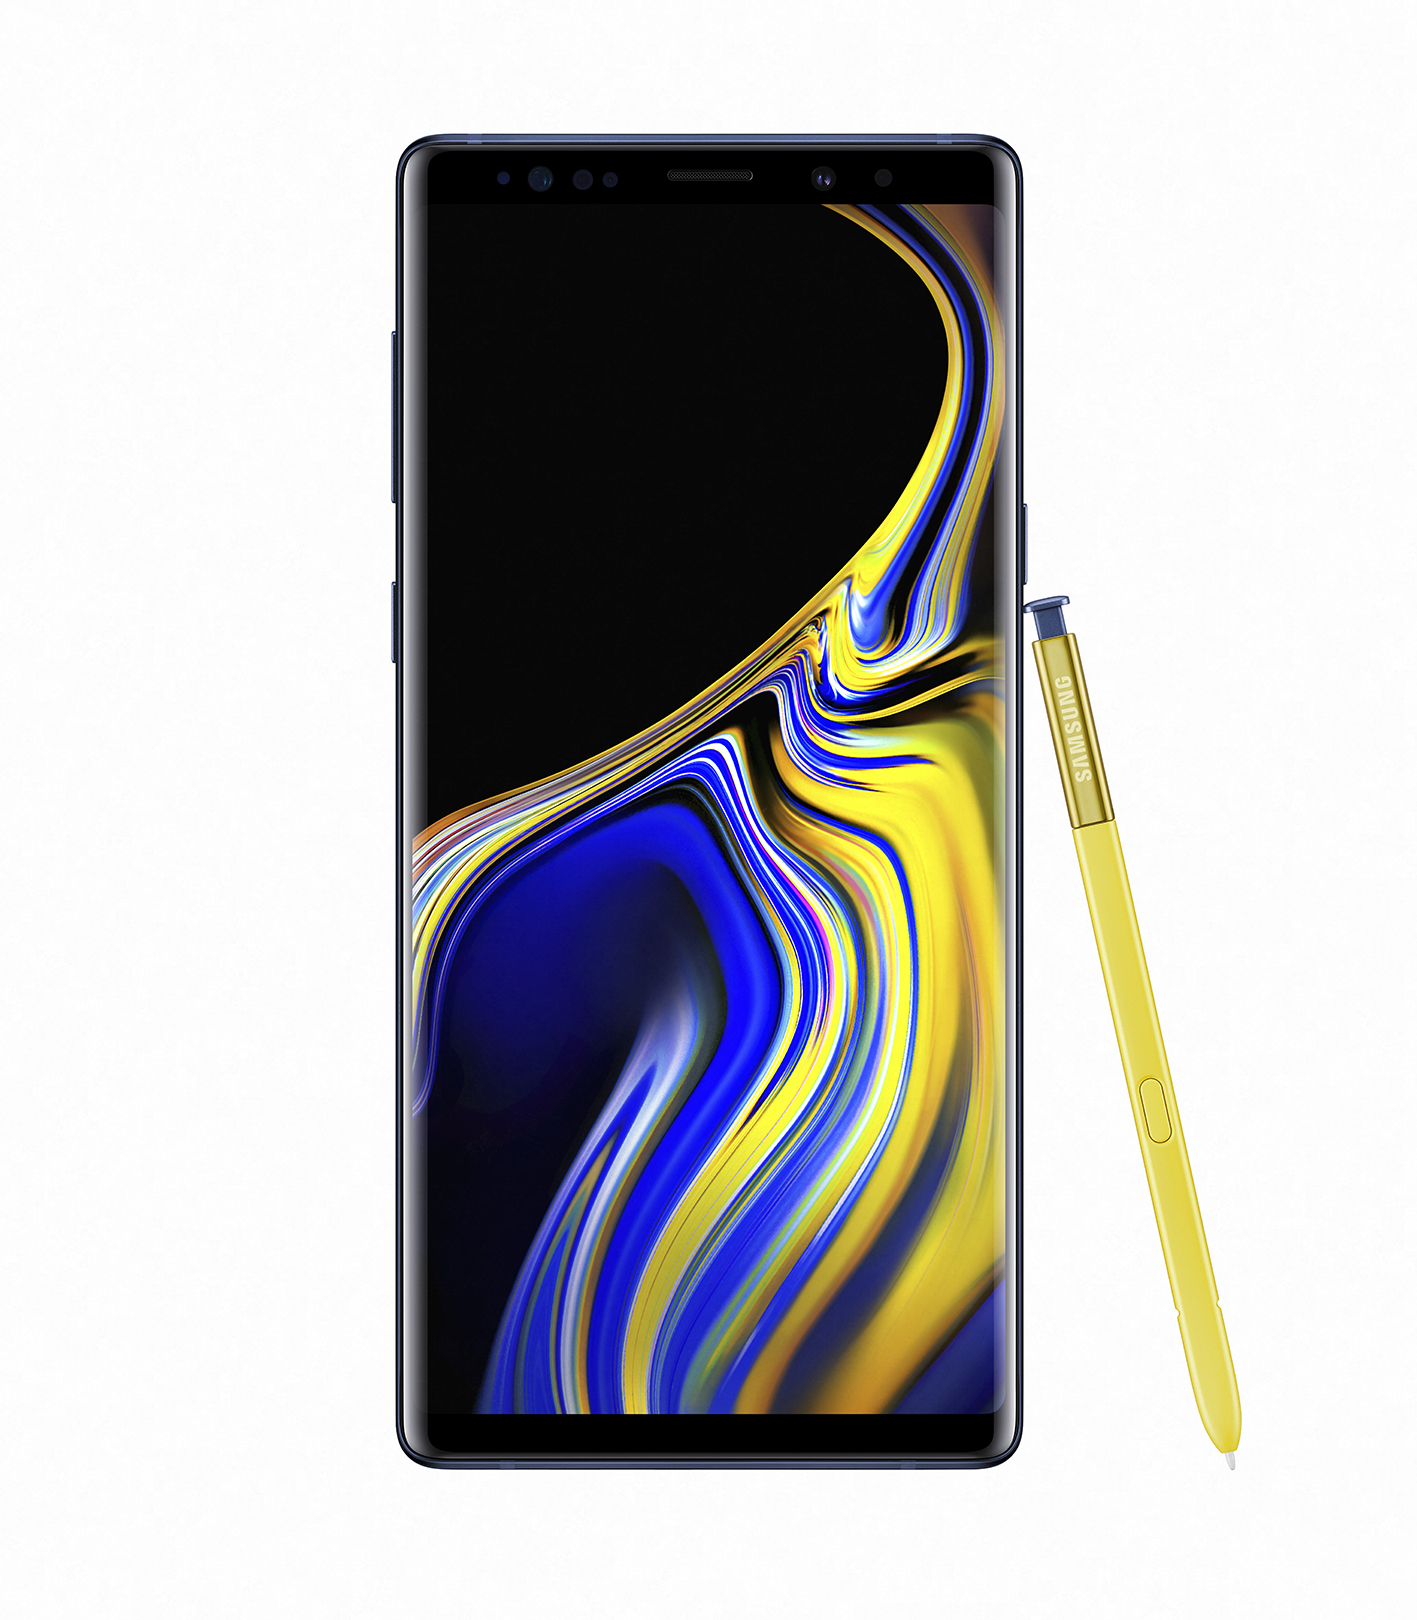 Galaxy Note9: Ghanaians Get Special Pre-Order Packages